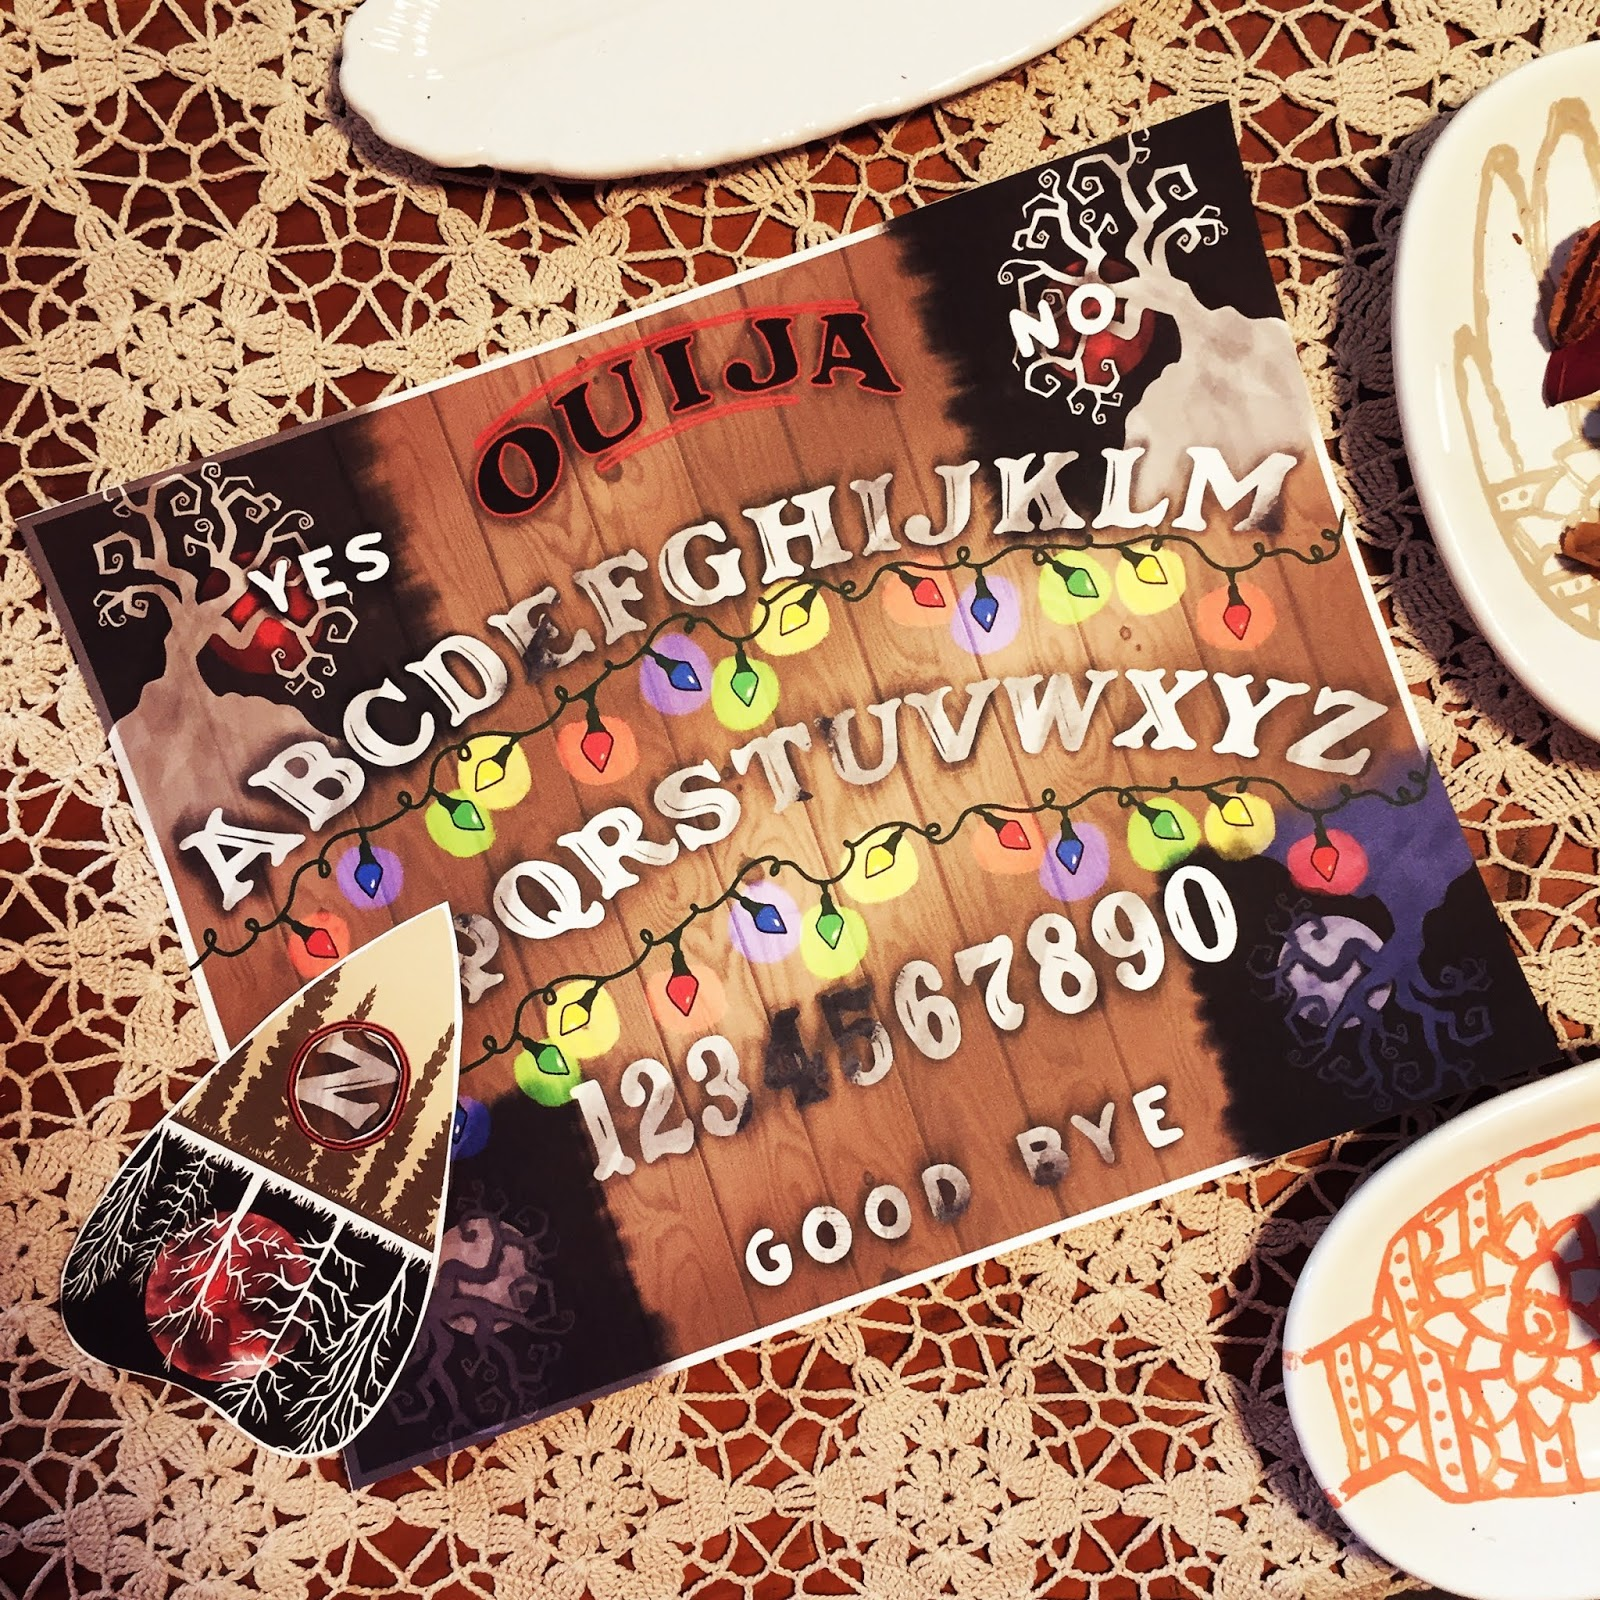 image regarding Printable Ouija Boards called Grimdol Affordable: Totally free Stranger Variables Printable Ouija Board and